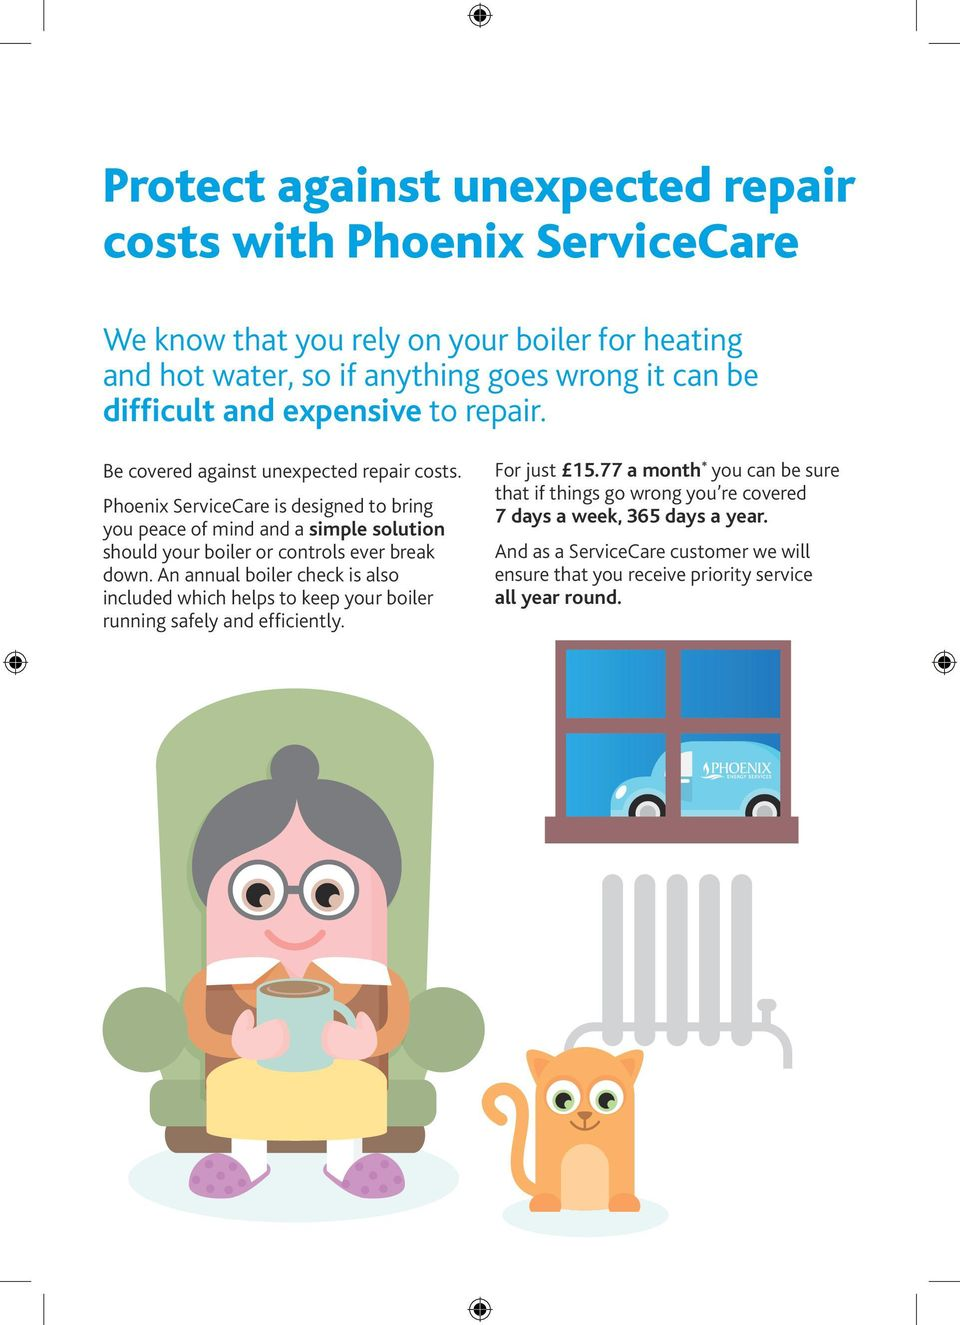 Phoenix ServiceCare is designed to bring you peace of mind and a simple solution should your boiler or controls ever break down.